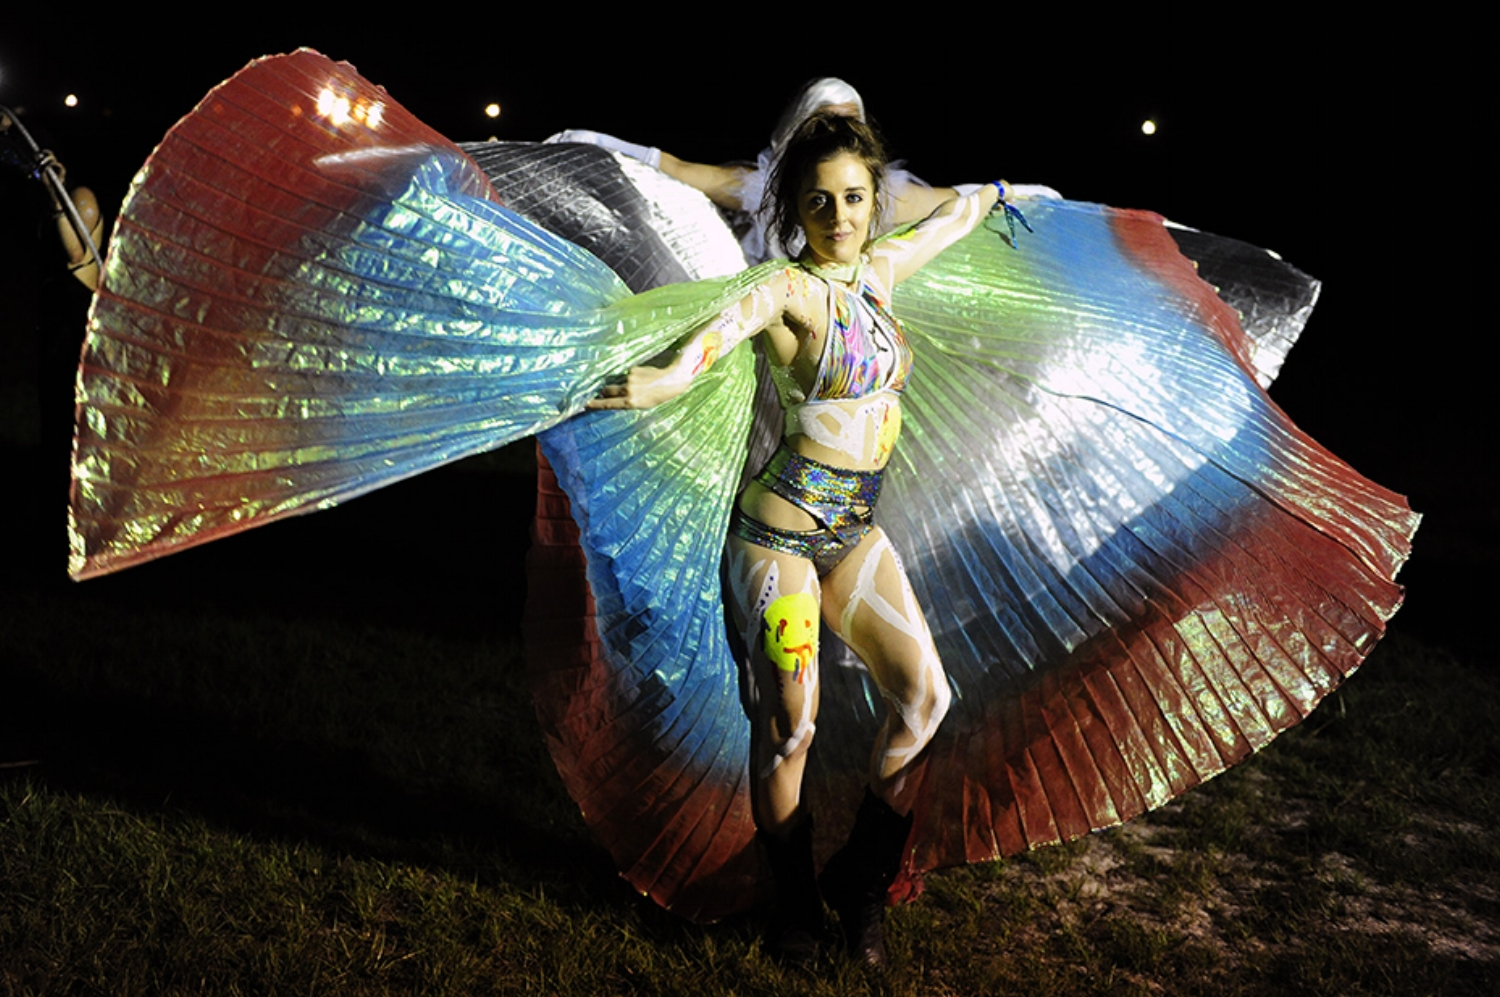 About 30,000 people descend on Okeechobee for the Okeechobee Music Festival on March 4, 2016 to see headliners such as Mumford & Sons, Skrillex, Kendrick Lamar, Robert Plant and Hall & Oates.